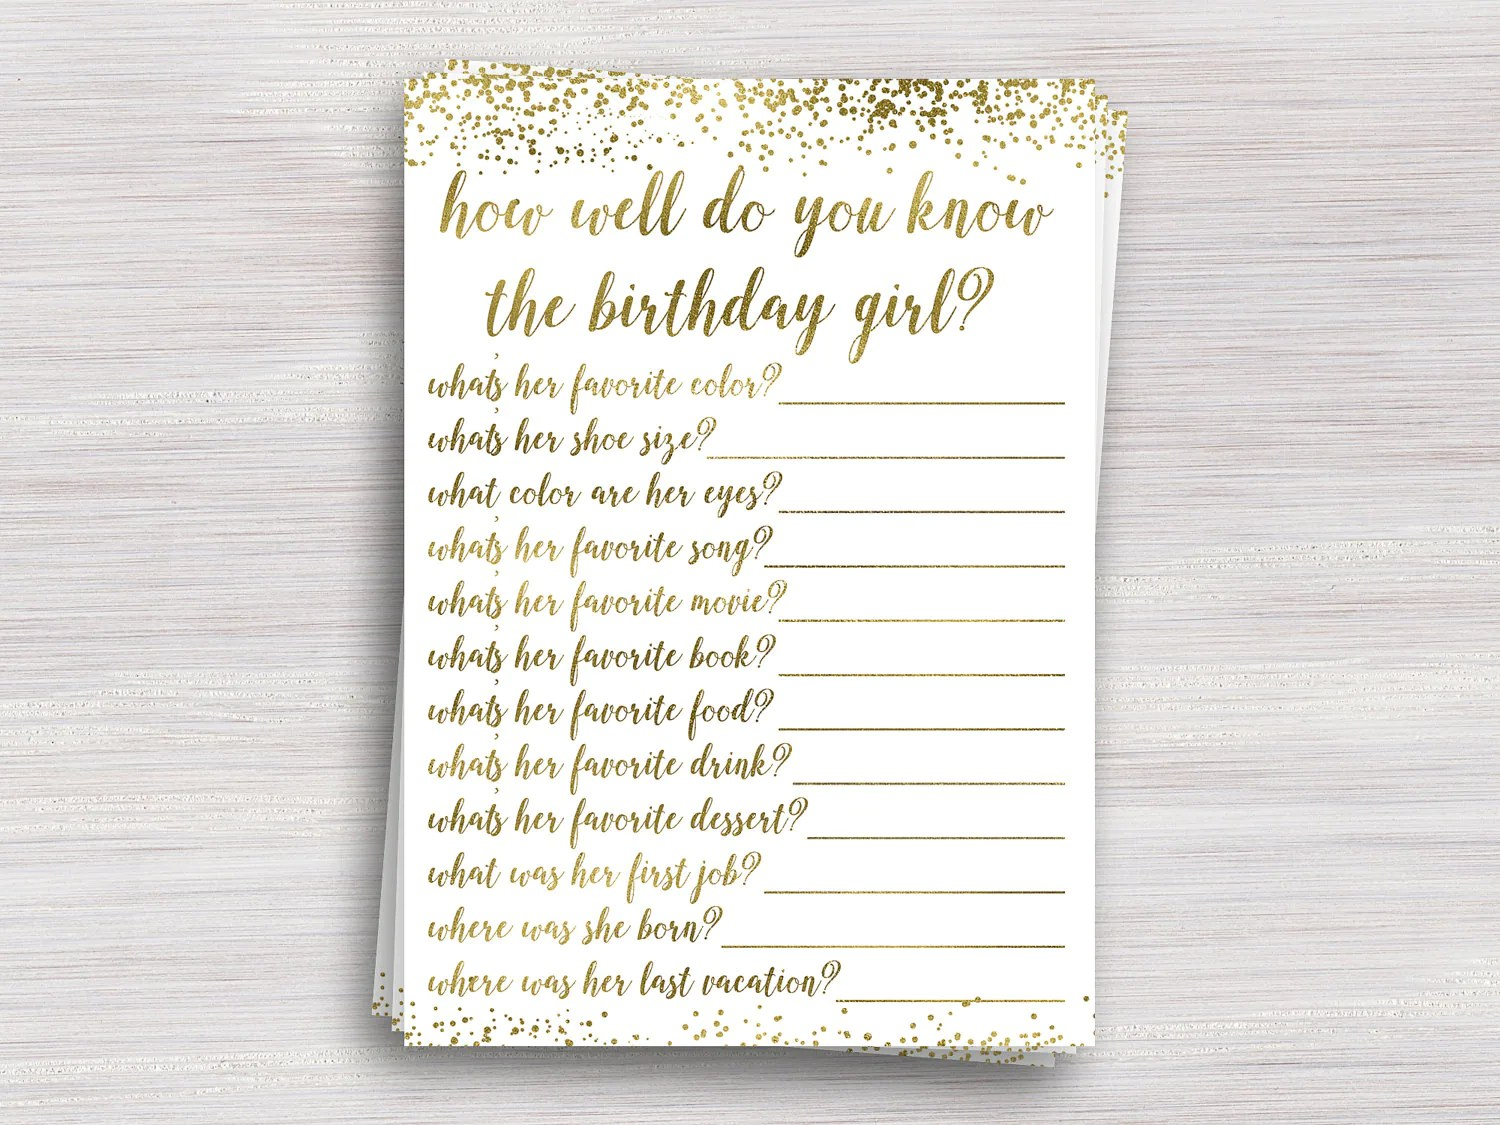 How Well Do You Know The Birthday Girl Girl Birthday Party